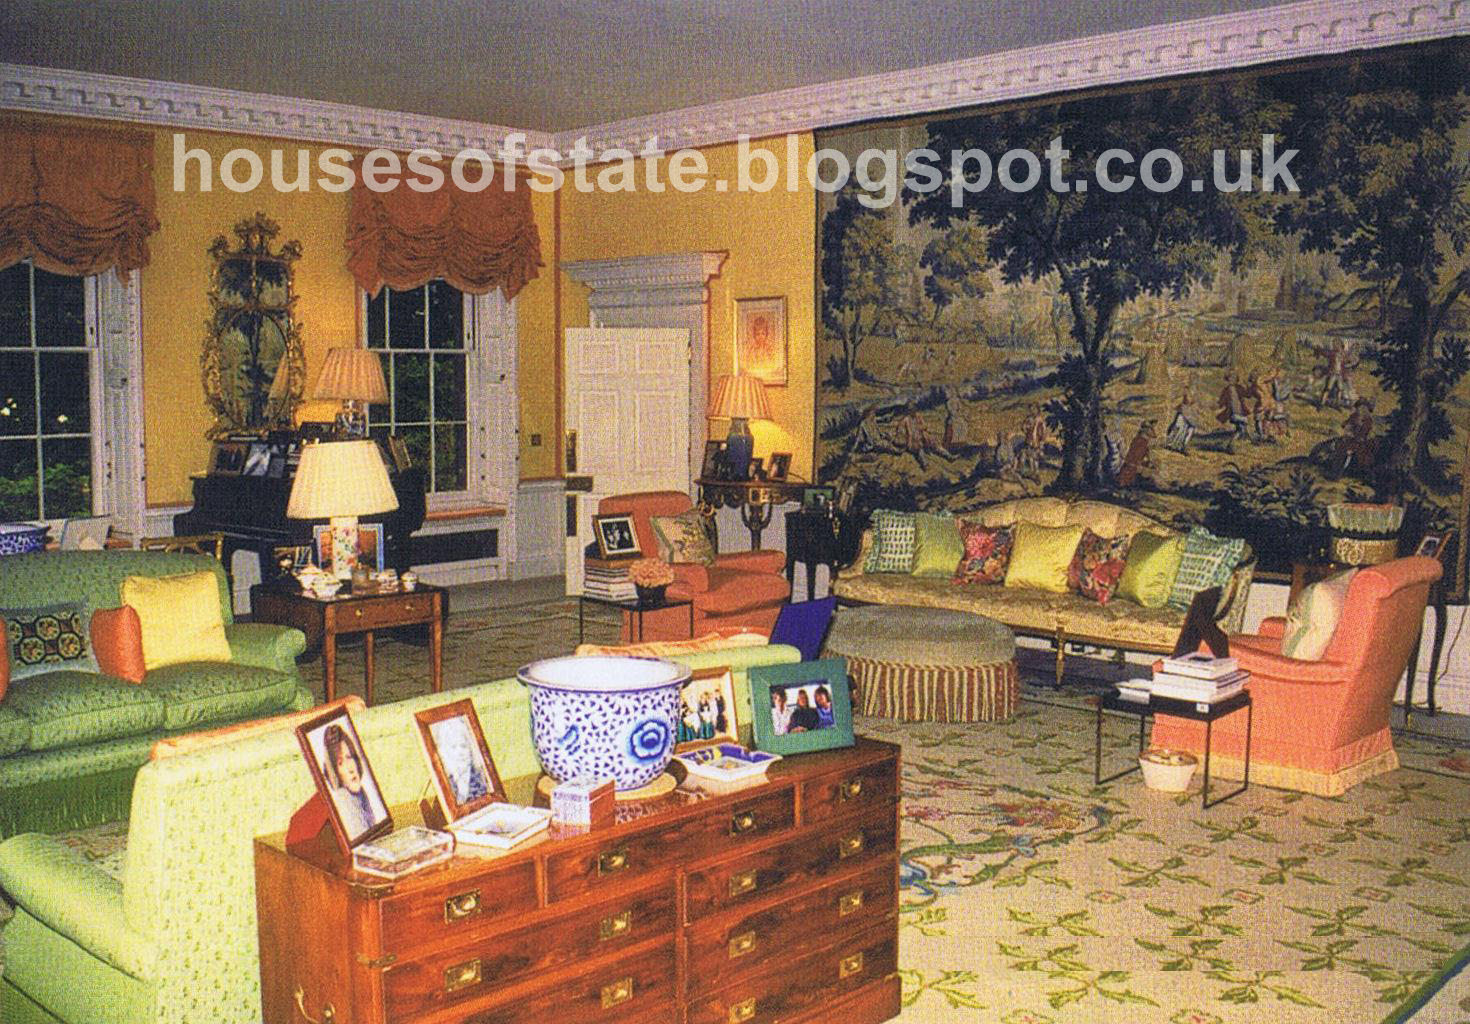 Houses Of State Kensington Palace Part 3 Of 4